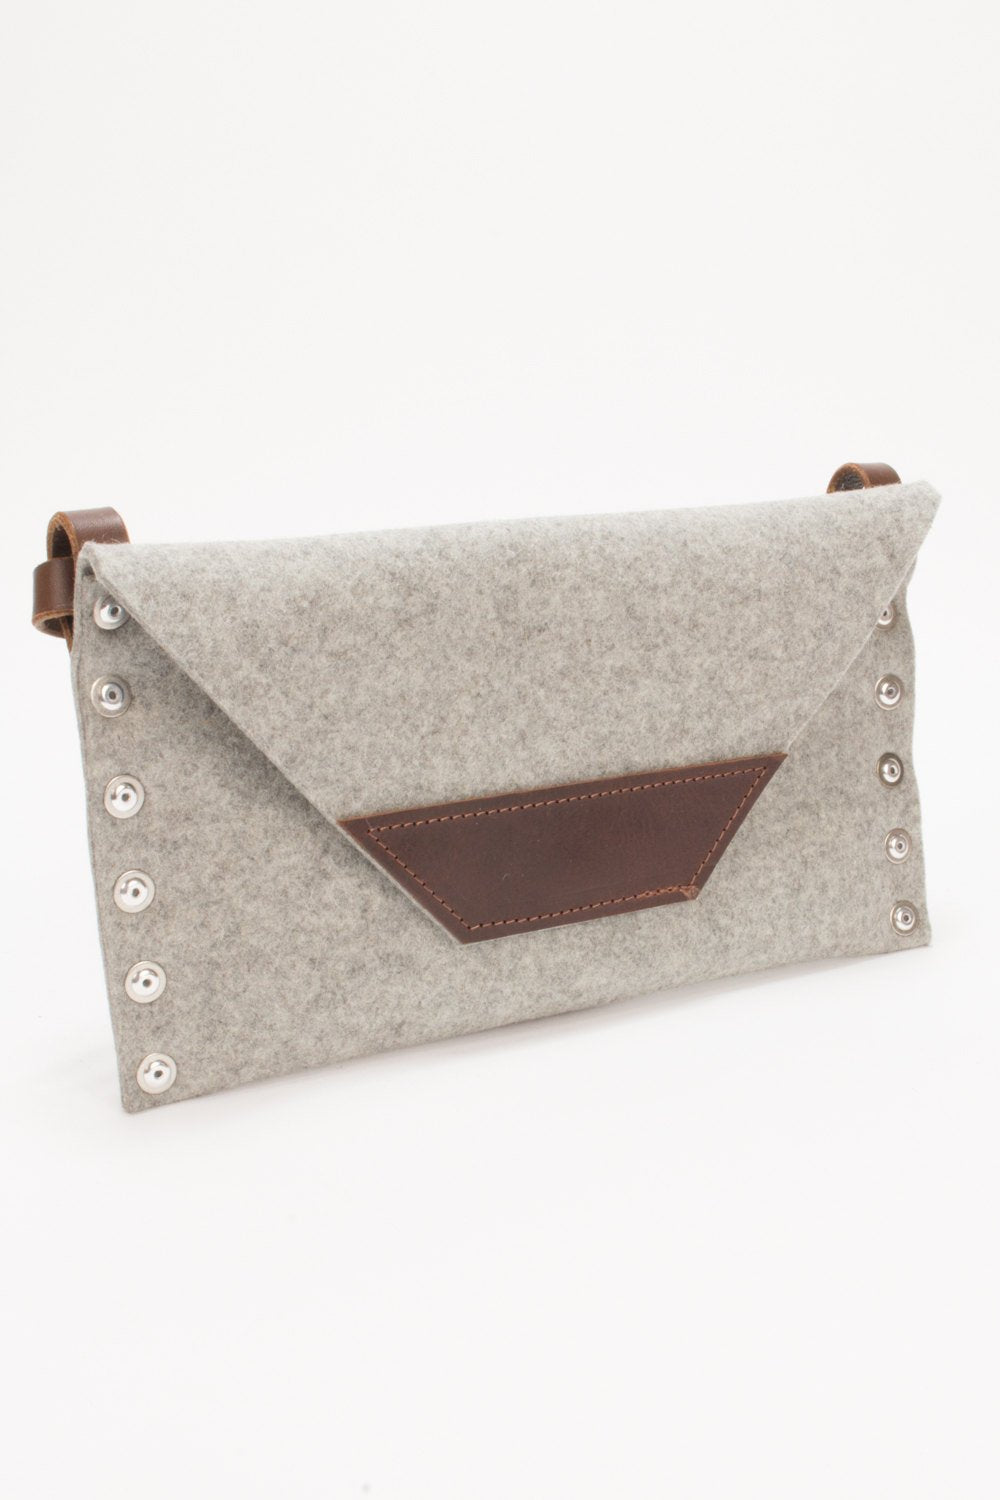 Felt Clutch, Womans Clutch Bag, Felt Shoulder Bag, Party Bag, Evening Bag, Grey Clutch, Handbag, Felt Handbag, Gift for Her, Night Out Bag